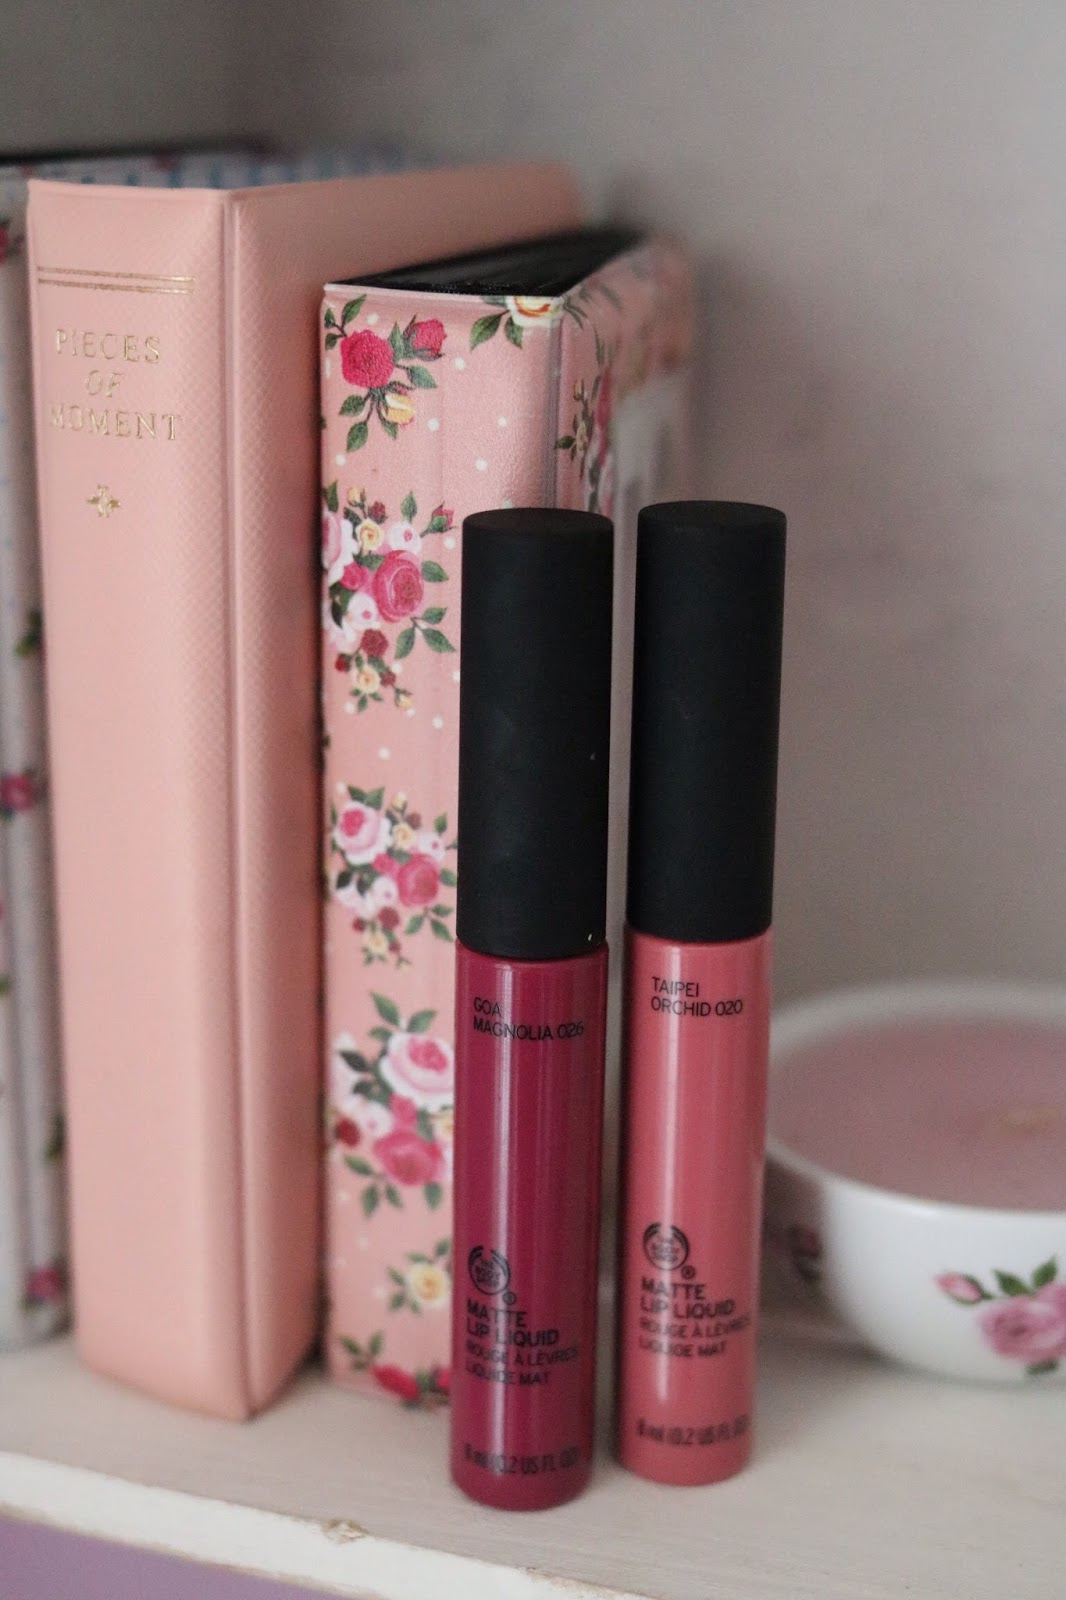 rosemademoiselle-rose-mademoiselle-the-body-shop-nouveautés-maquillage-2017-gloss-à-lèvres-rouges-à-lèvres-crush-avis-revue-goa-magnolia-tapei-orchid-420-Honolulu-Pink-423-Rio-Fuchsia-425-Lima Magenta-blog-beauté-paris-swatch